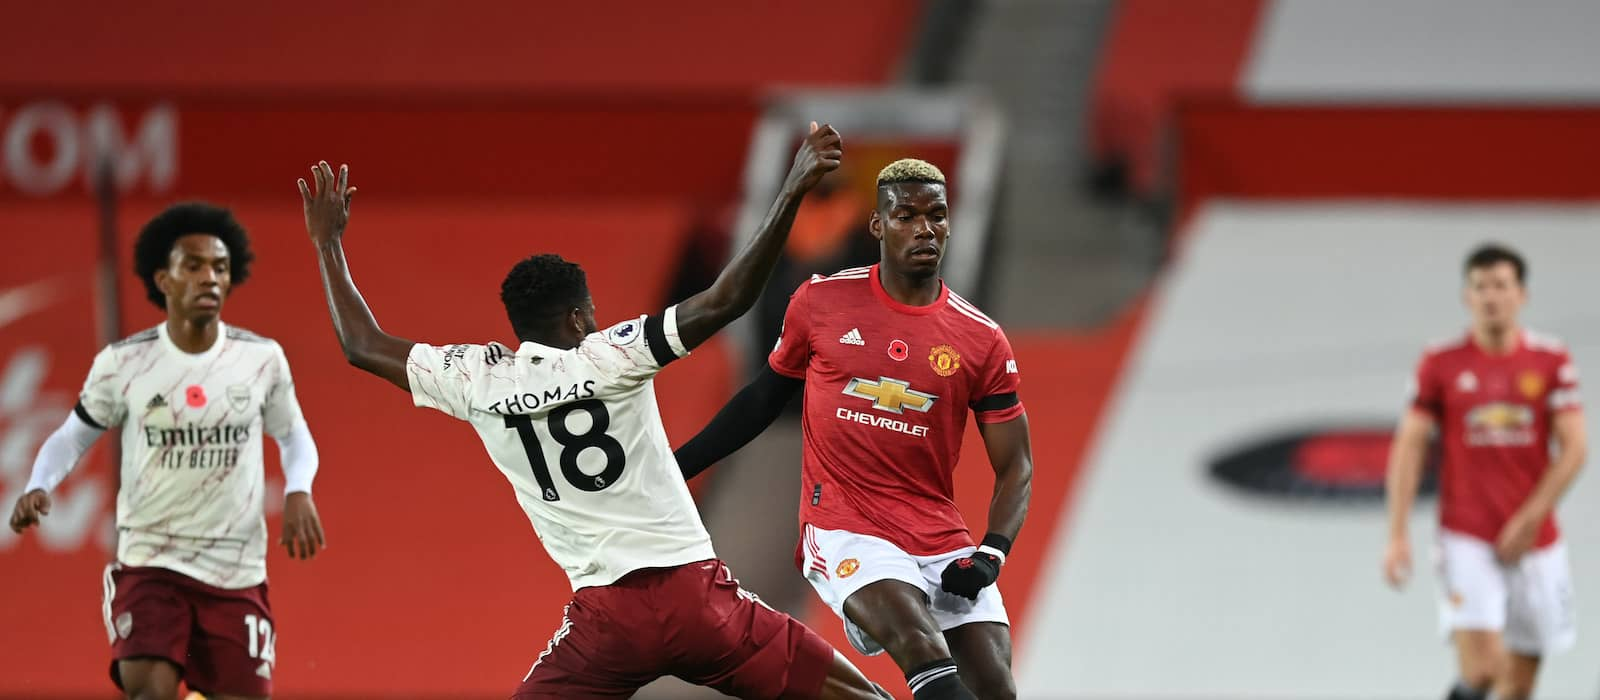 'Show pony' Paul Pogba intends to leave Man United on free transfer